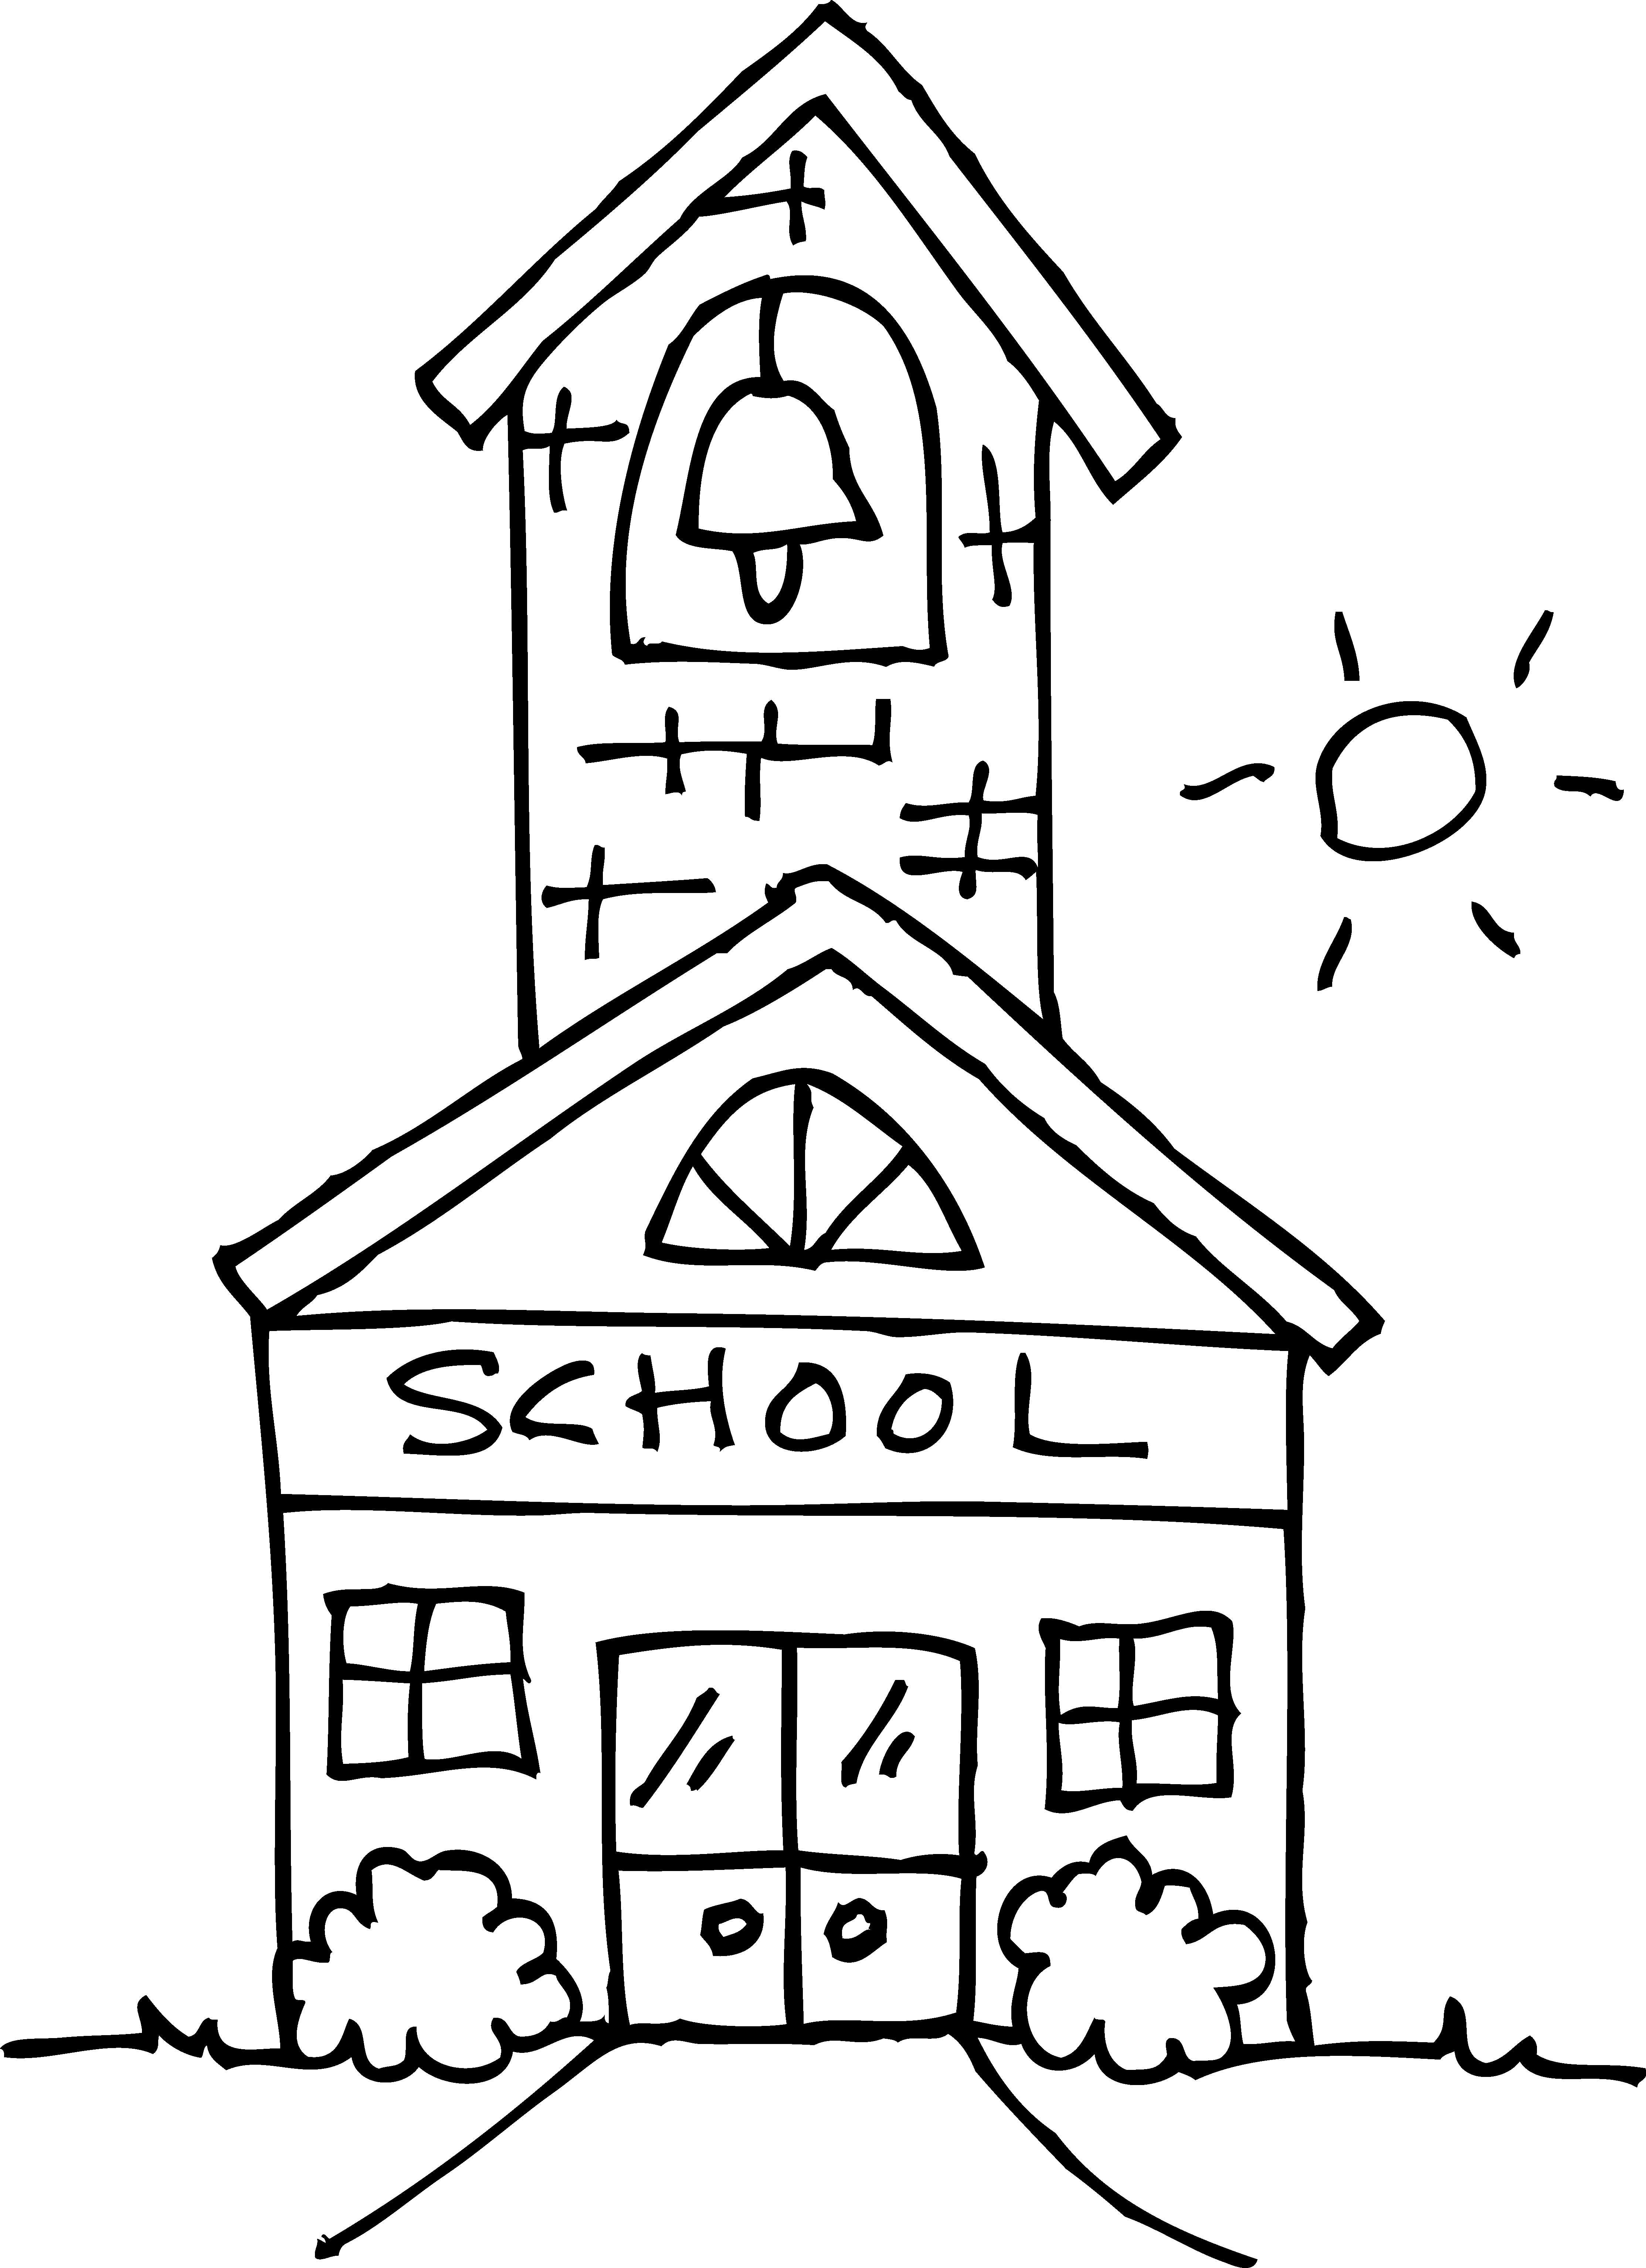 School drawing black and white